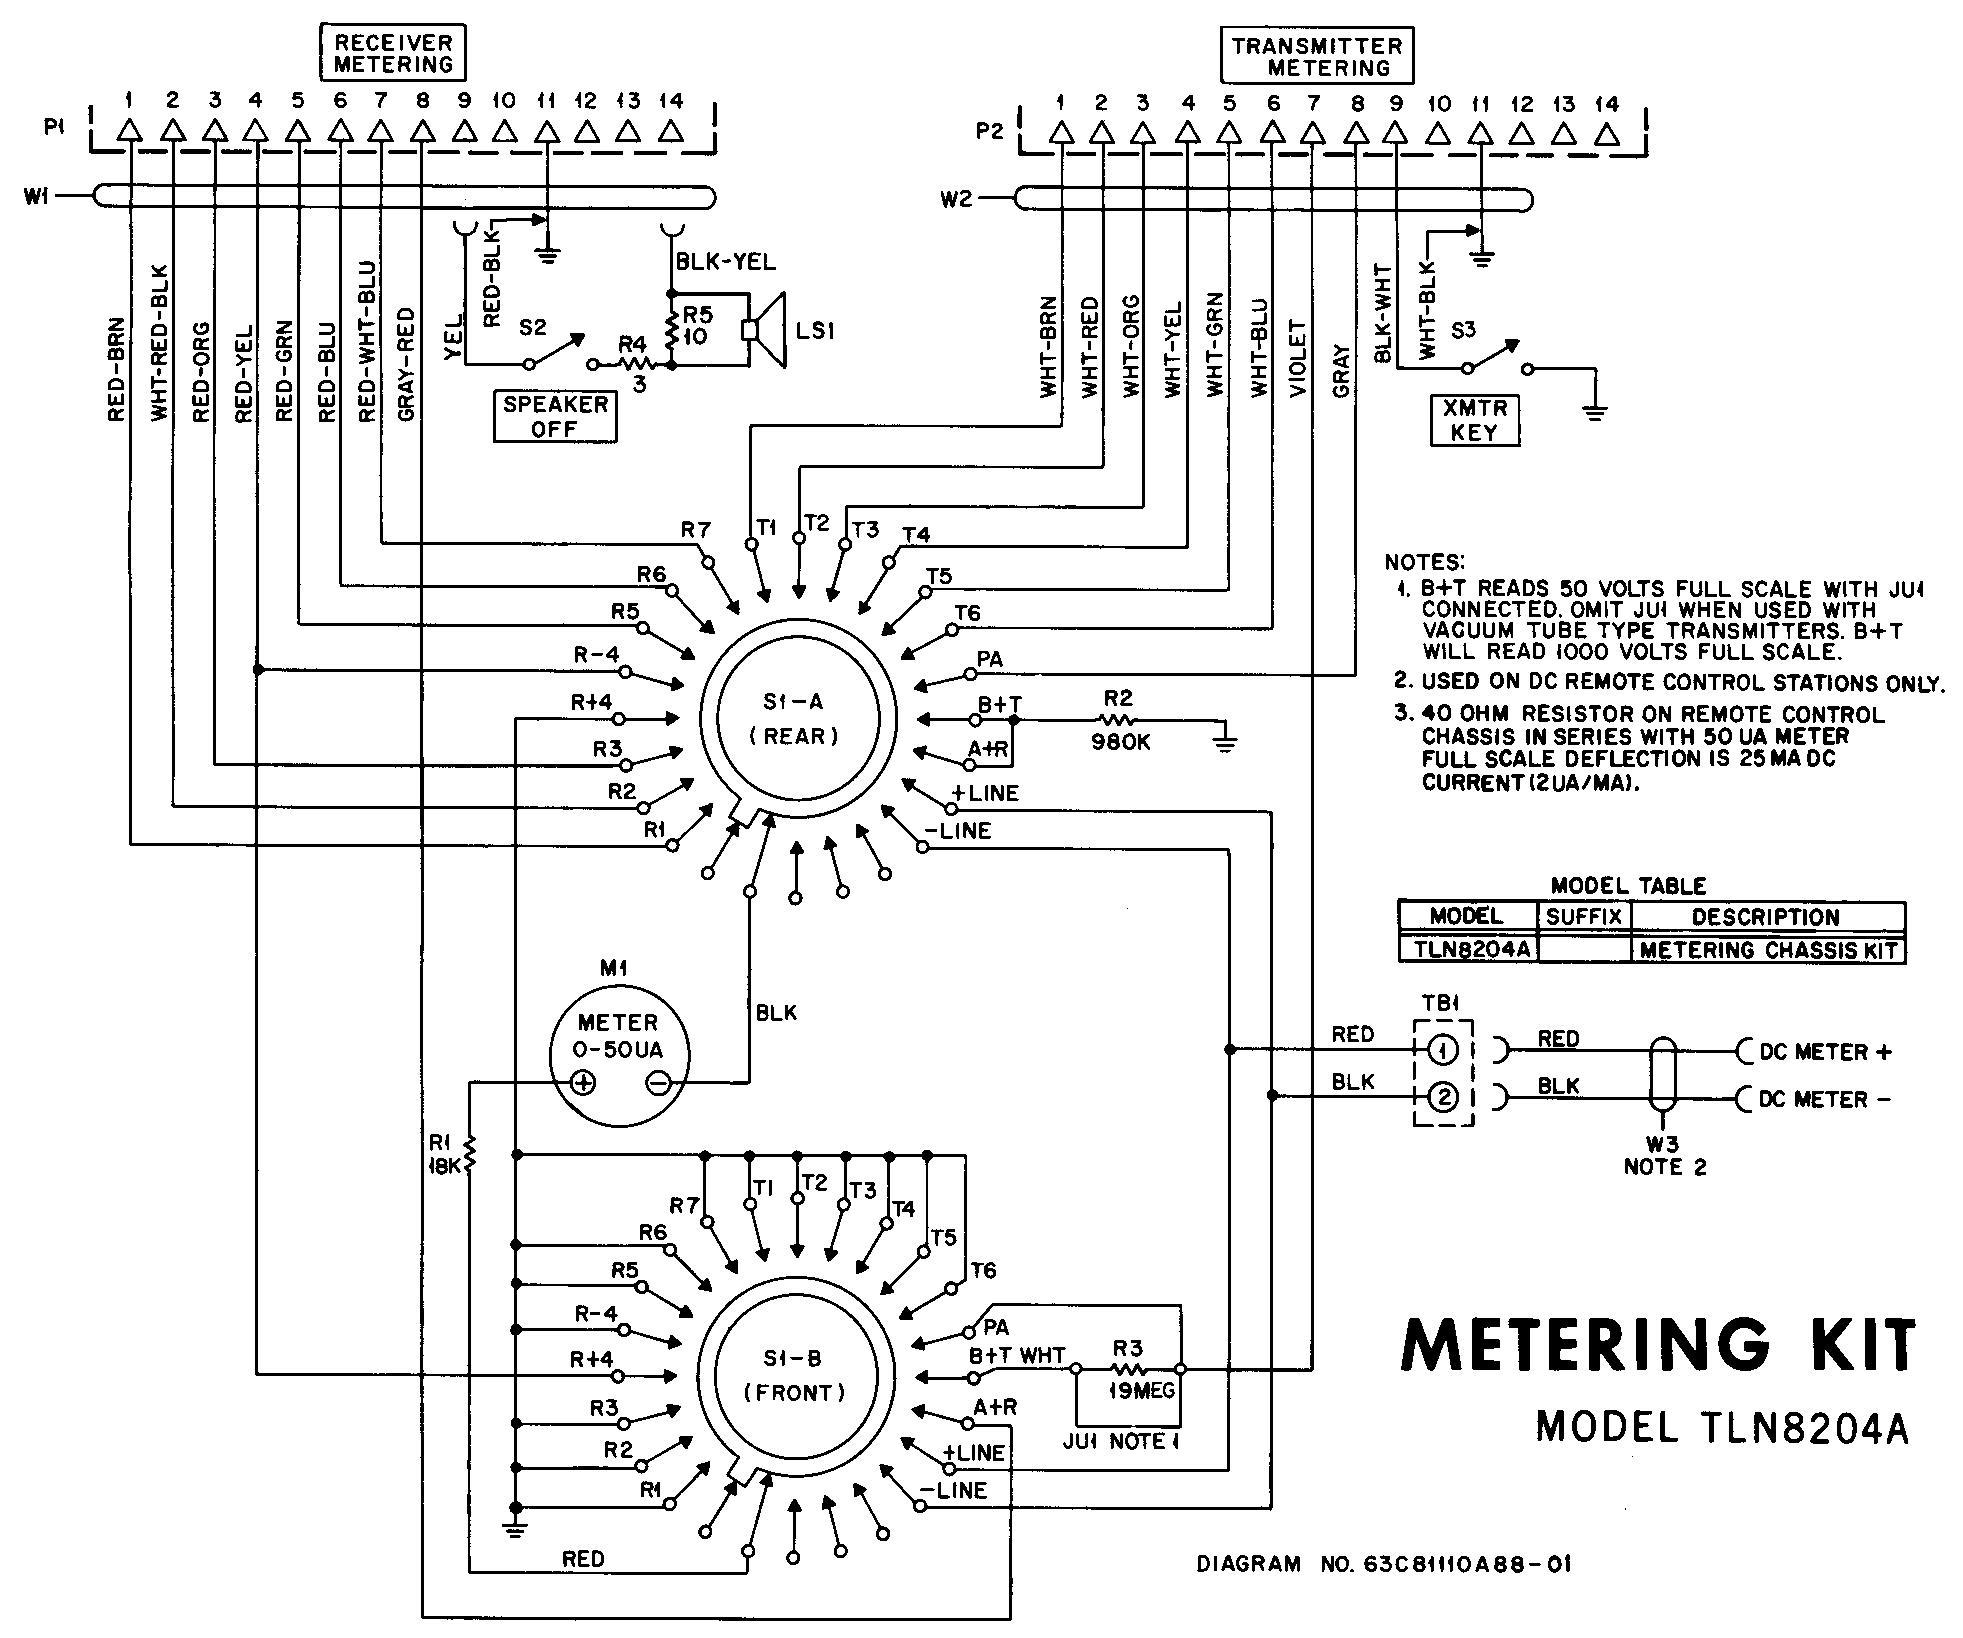 12 2 Wire Used With 3 Position Switch Diagram